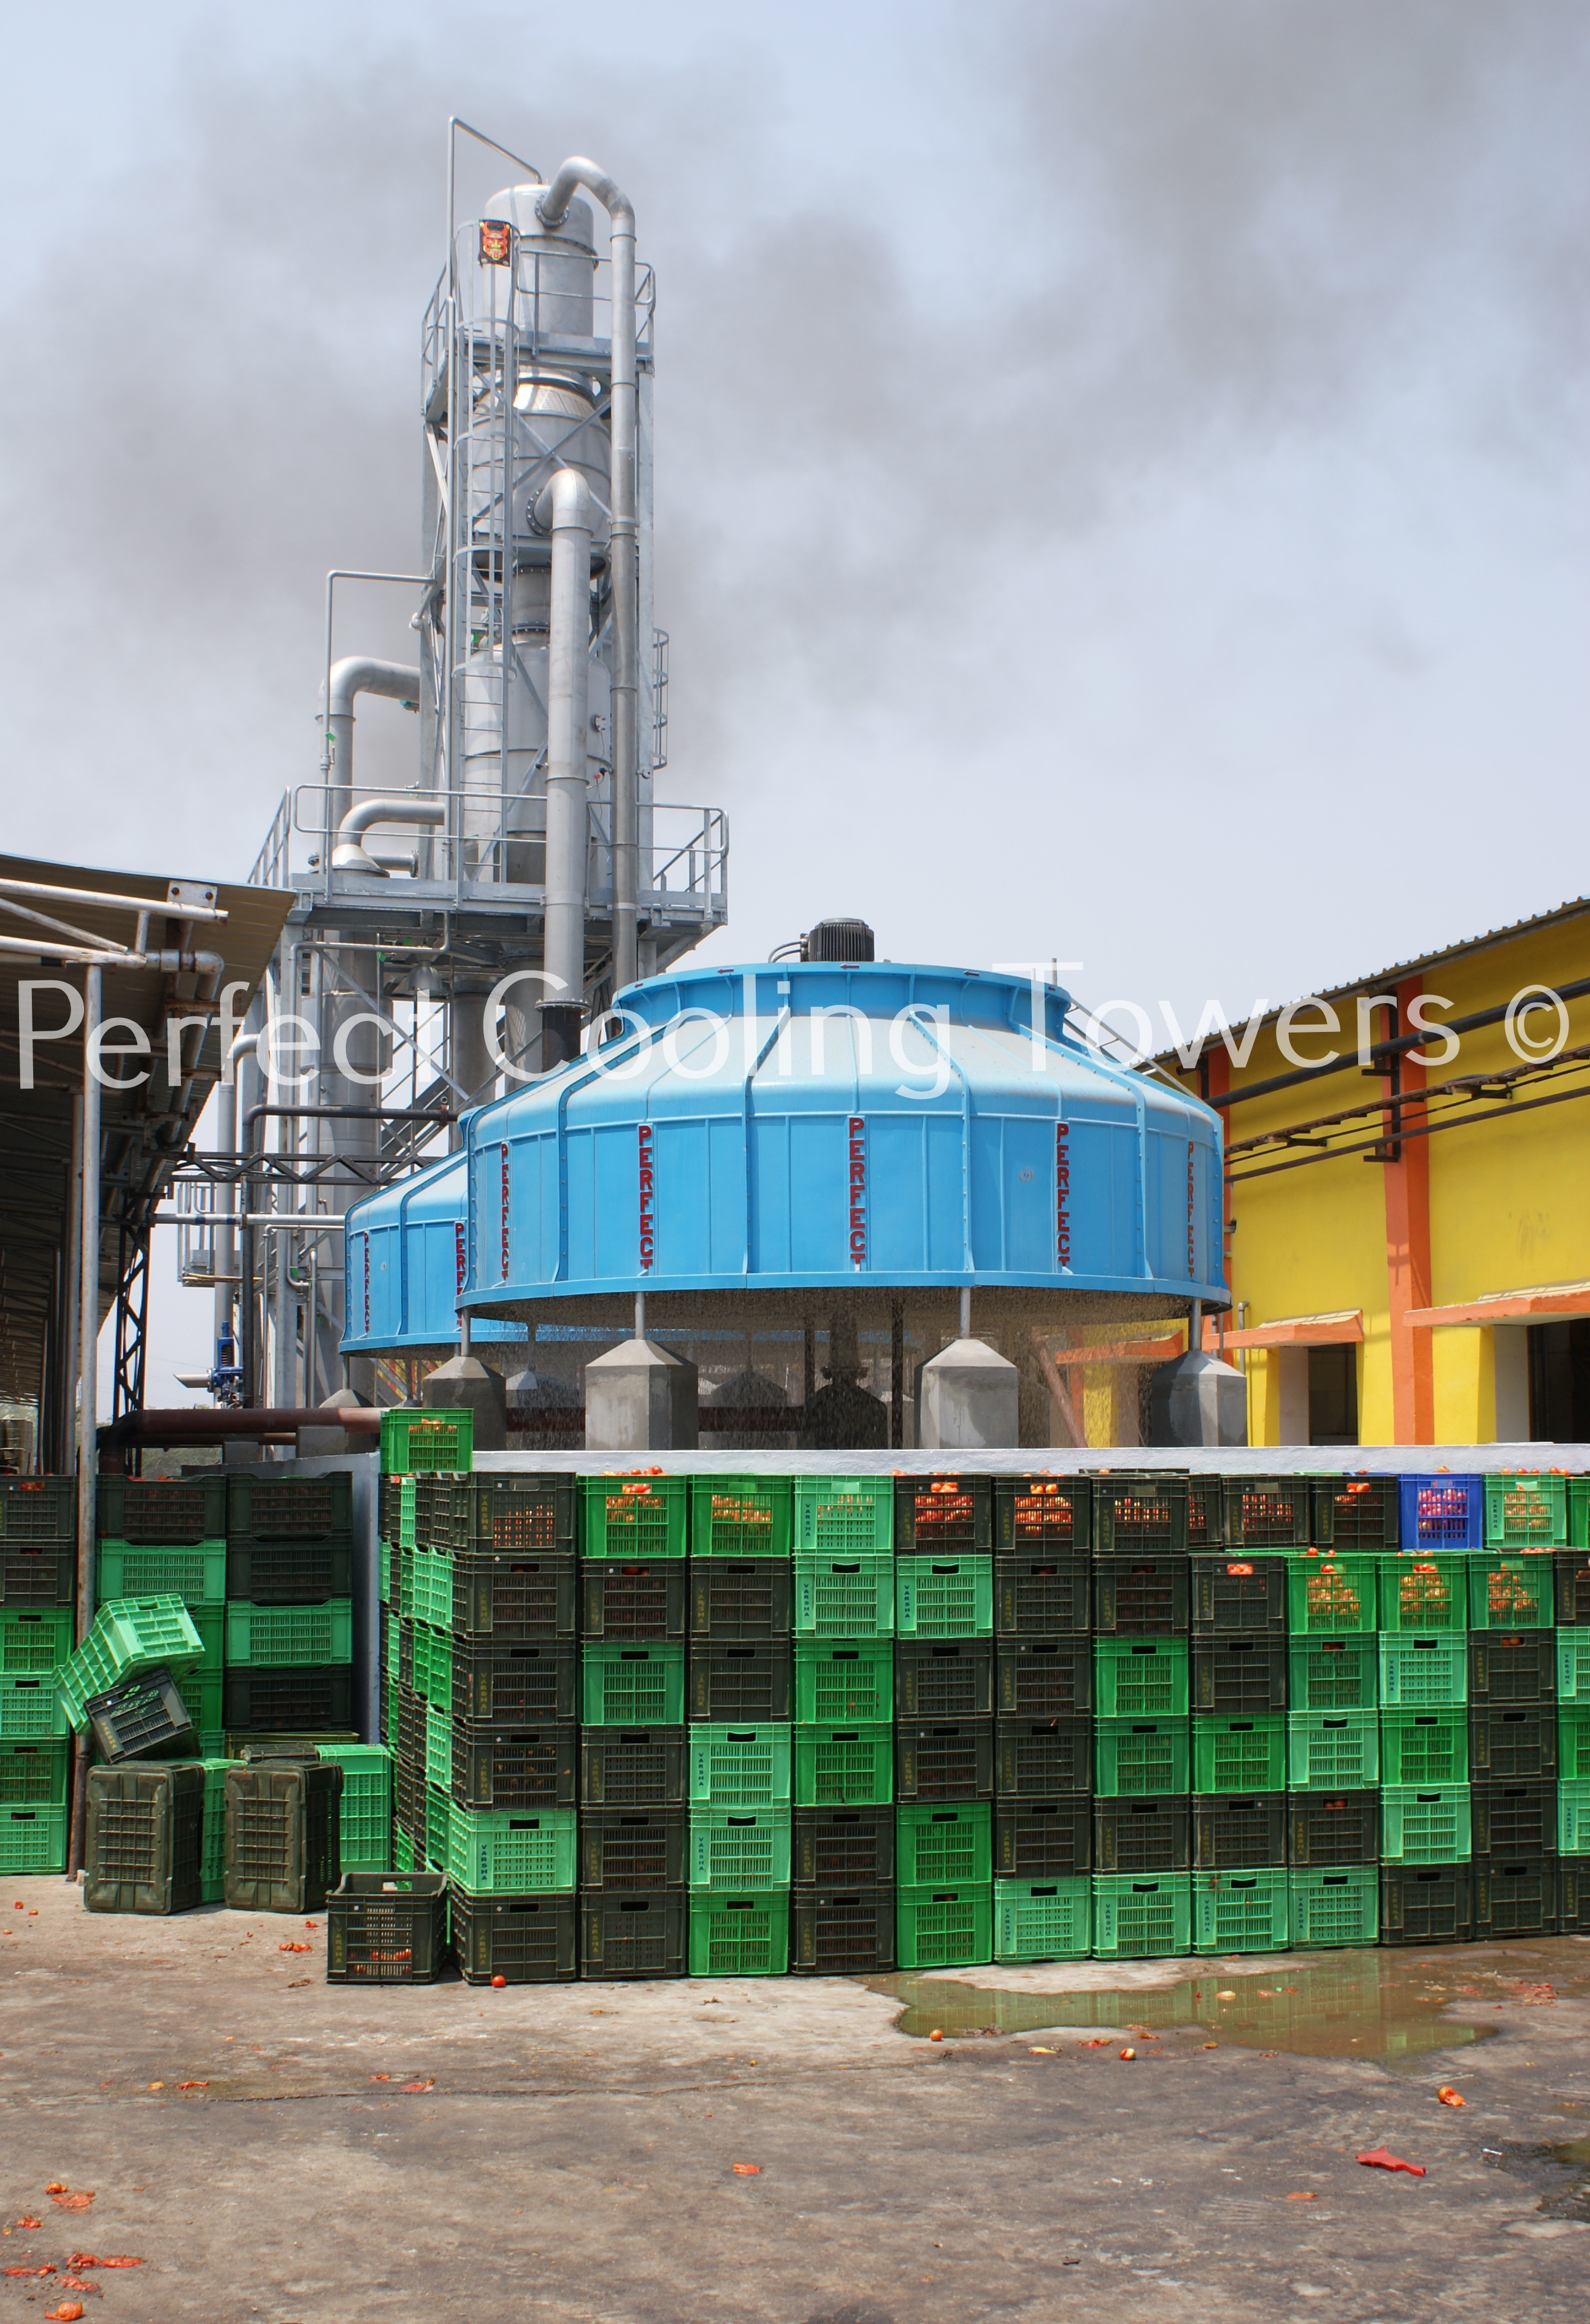 perfect cooling towers     manufacturers of cooling towers